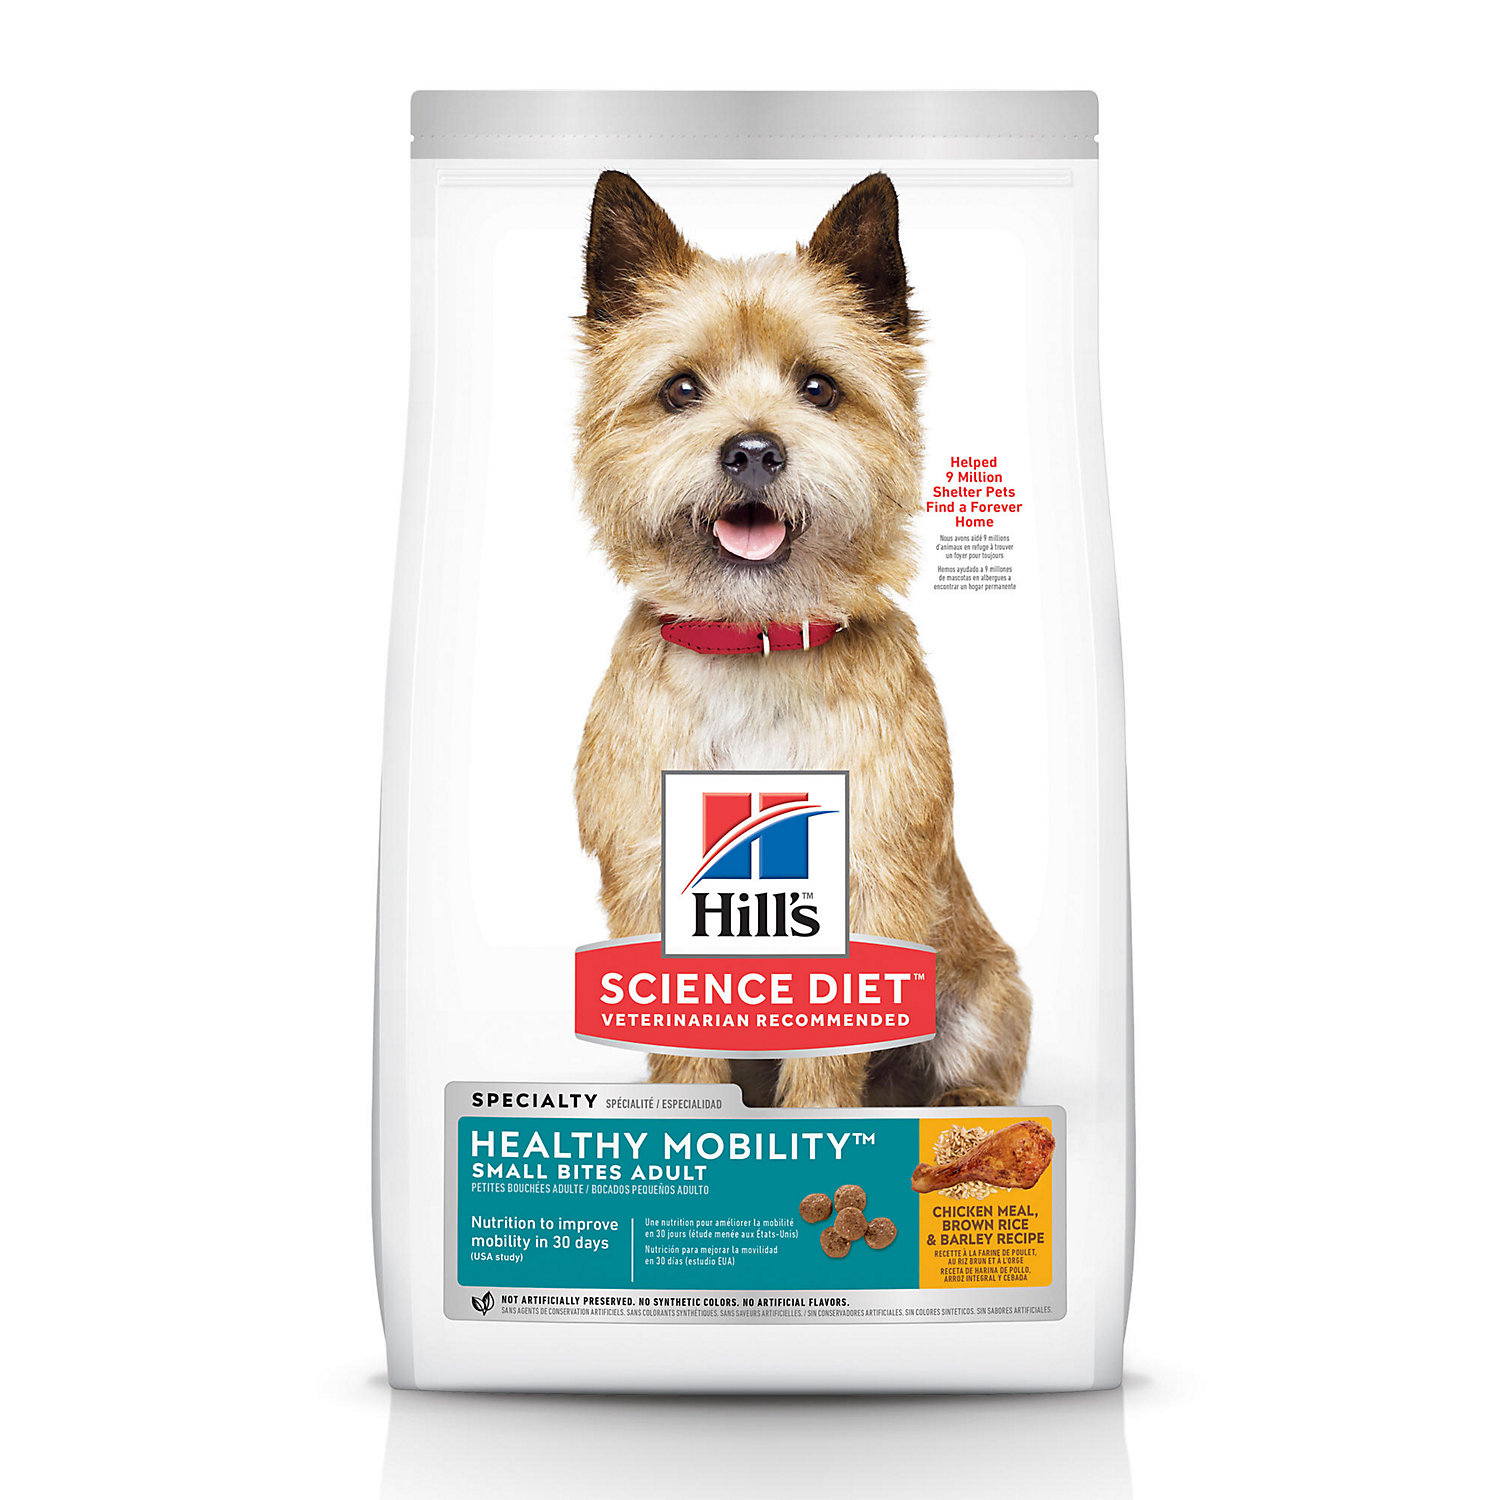 Hills Science Diet Healthy Mobility Small Bites Adult Dog Food 30 lbs.